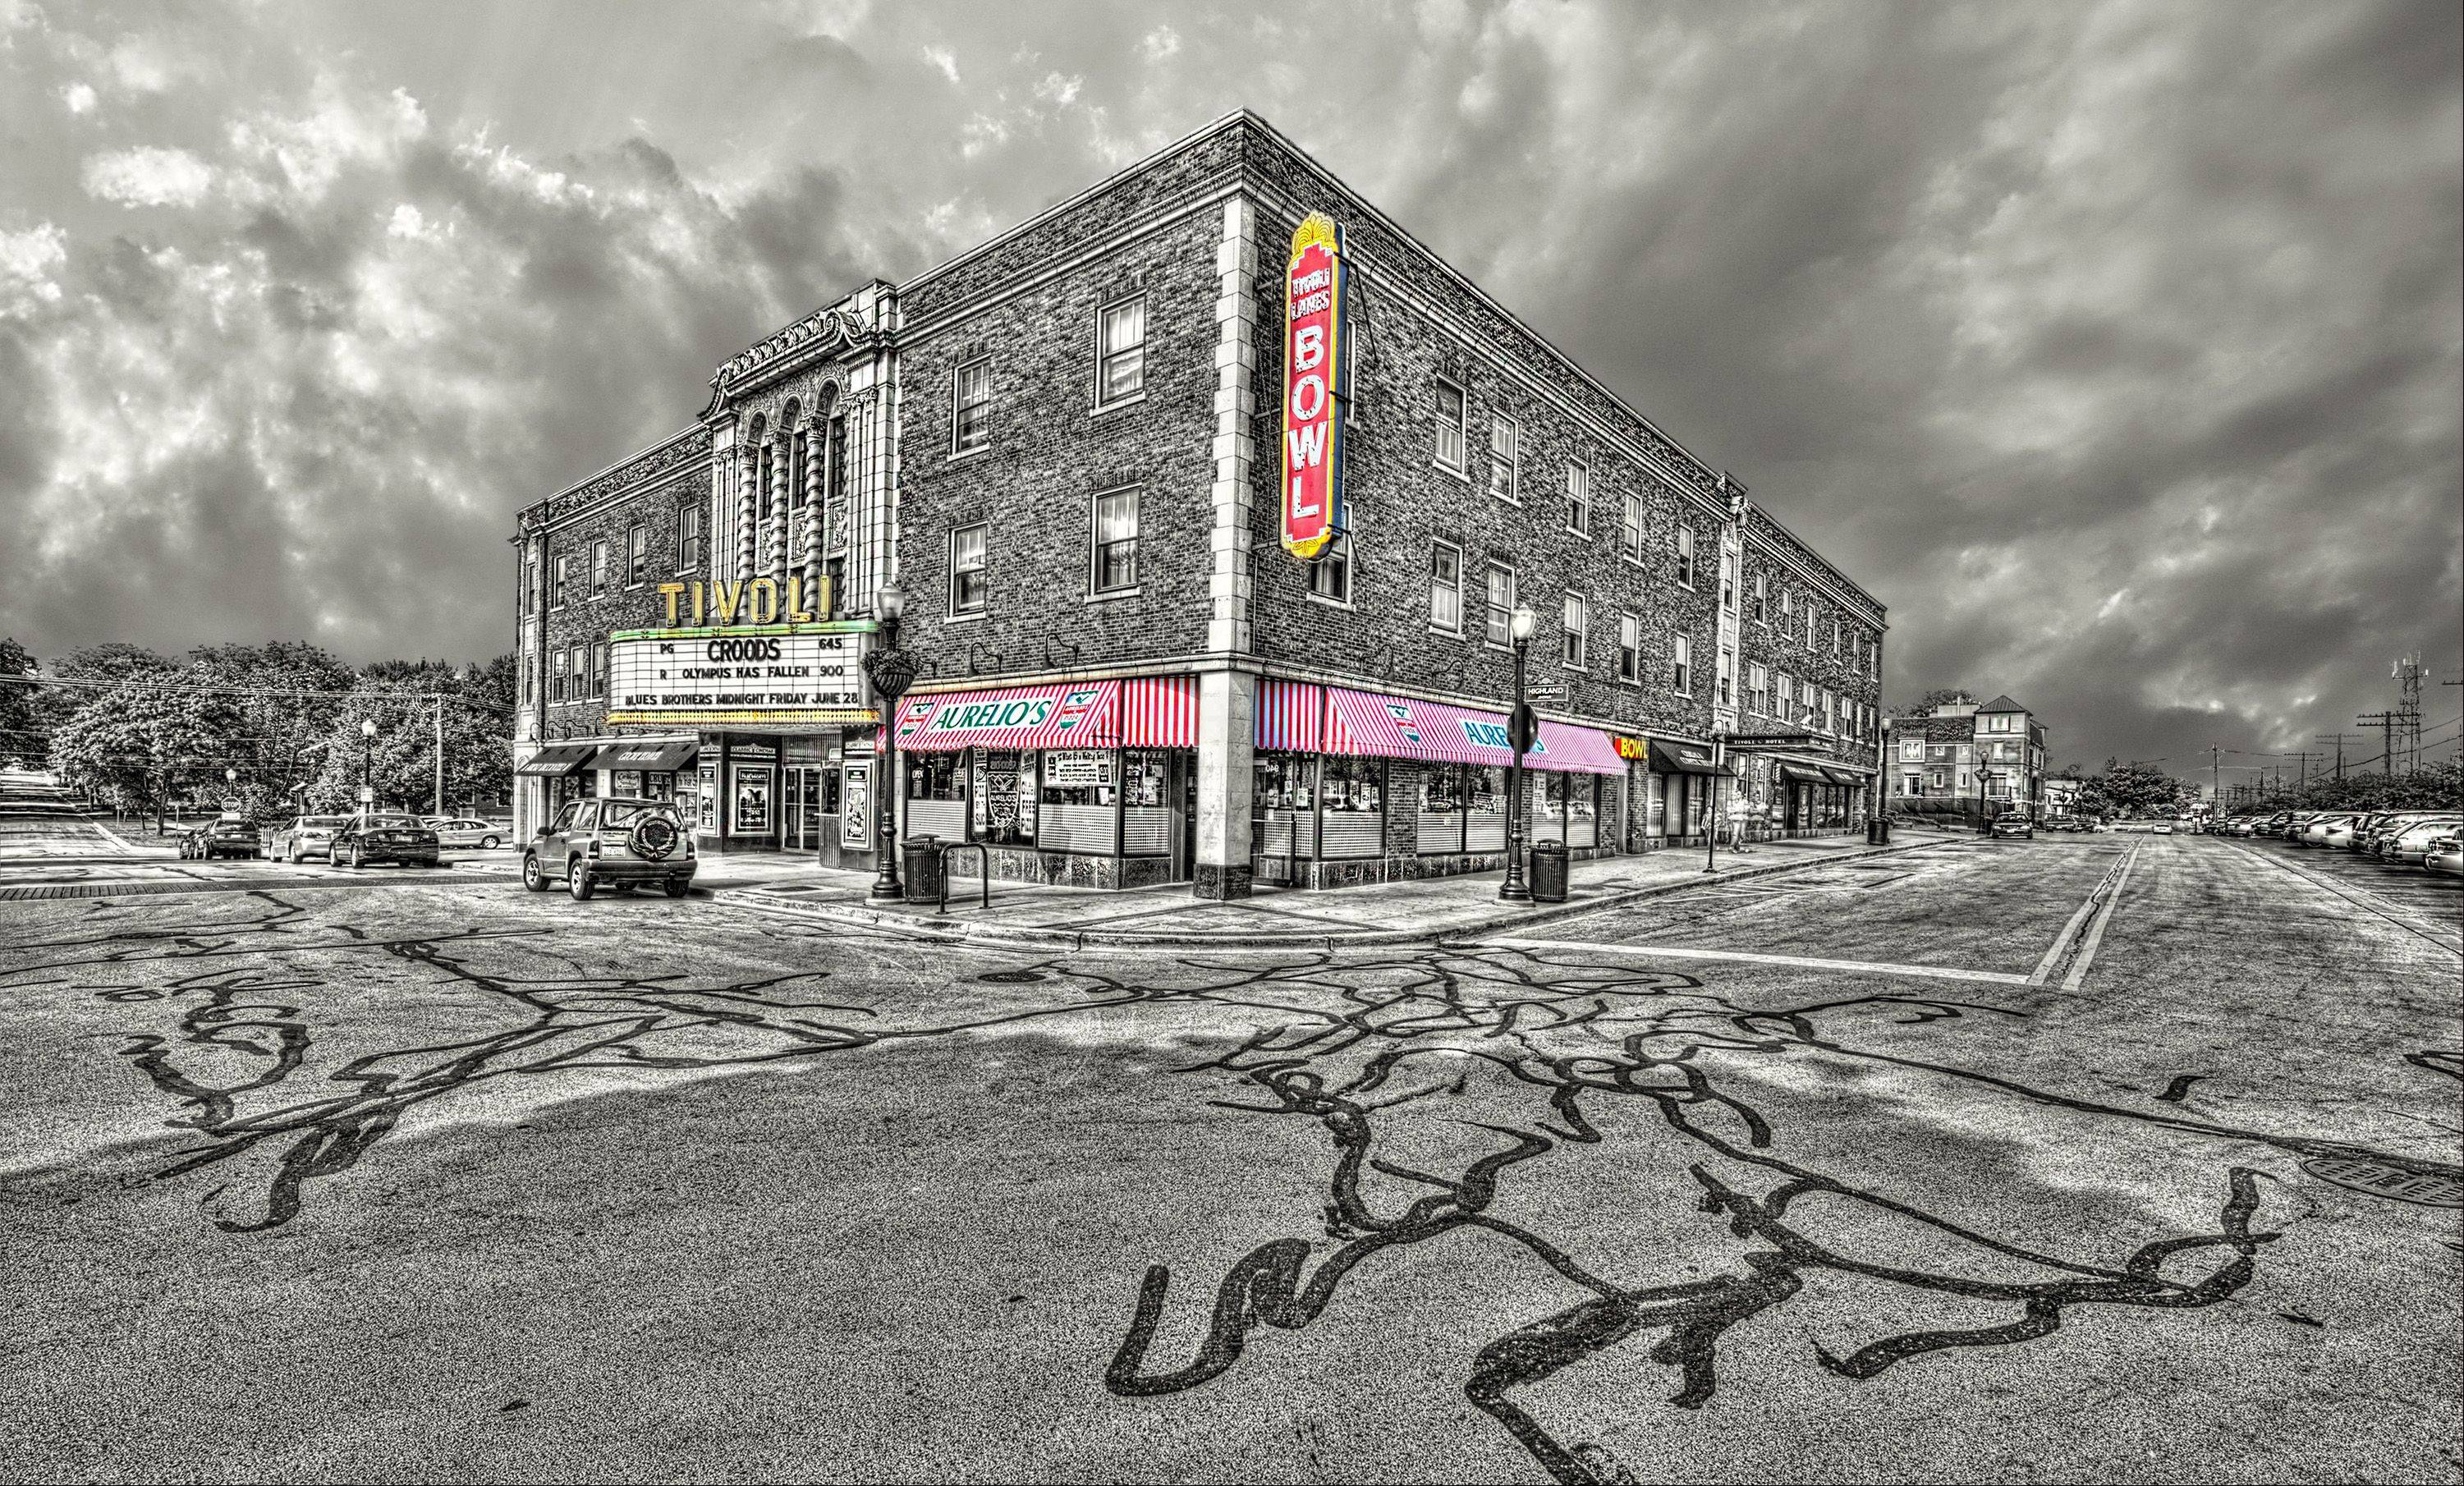 I shot this photo of the Tivoli Theatre in downtown Downers Grove. It was shot originally in HDR to capture the tonal quality then converted to B&W. The original sky was a flat blue and there were lots of water spots on the lens from the previous shoot, so masking out the sky seemed like the logical thing to do. I'll admit to spending a great deal of time on the detail on the front of the theater, the signage in the pizza shop and the house at the end of the block. The more I stared at this, the little things popped out and needed enhancement. The original image size out of the camera was a 36mb file, shot with a Nikon D800E and a Nikor 14-24mm lens.